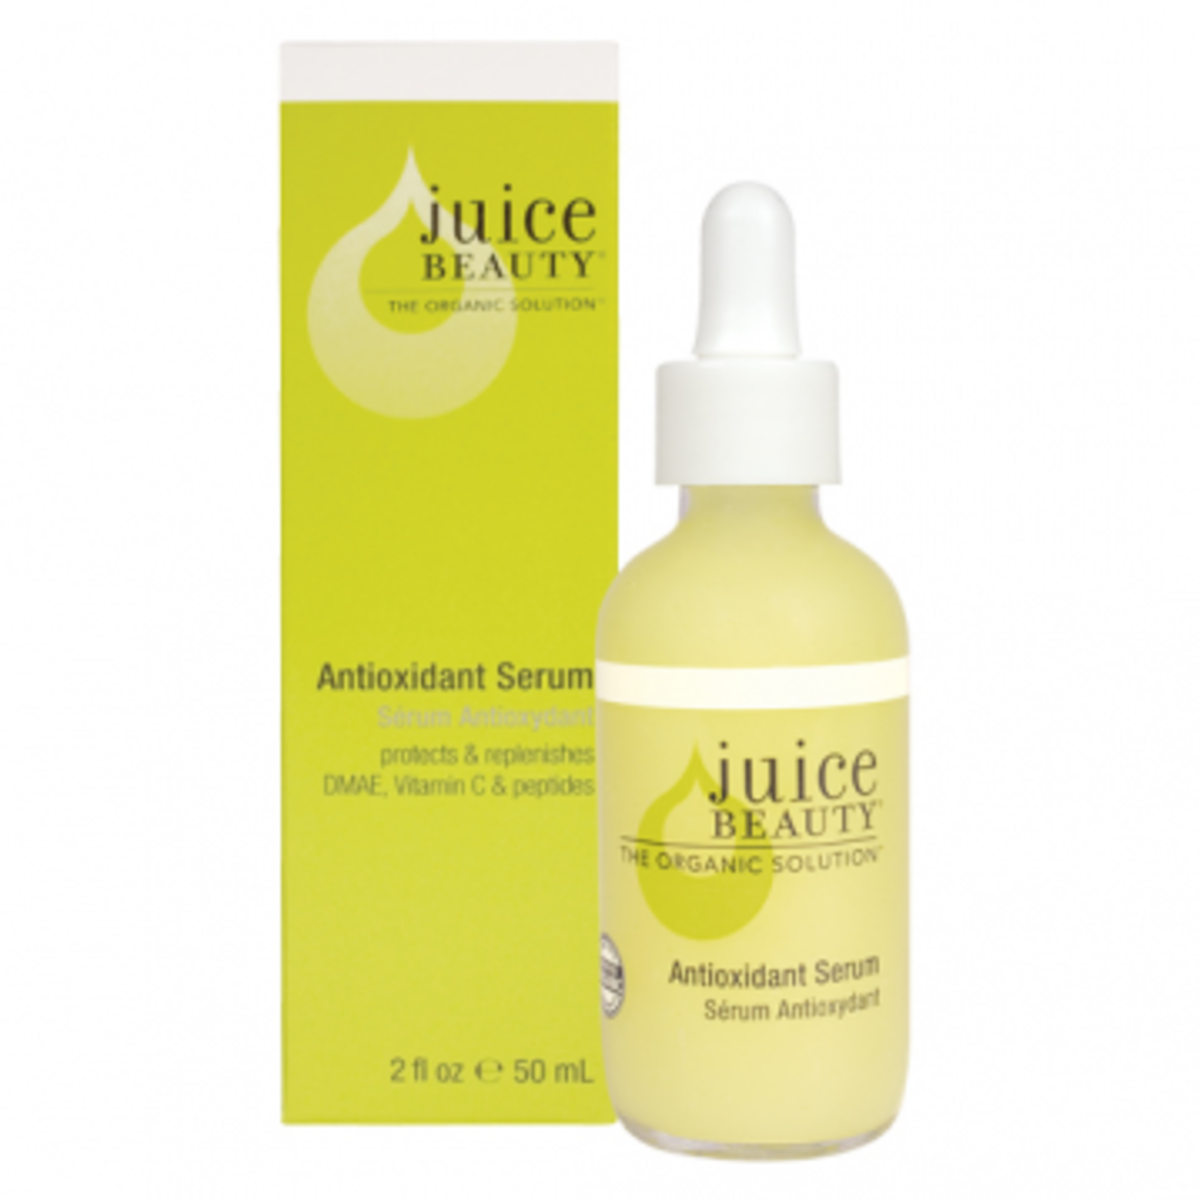 antioxserum-juicebeauty-juicebeauty1